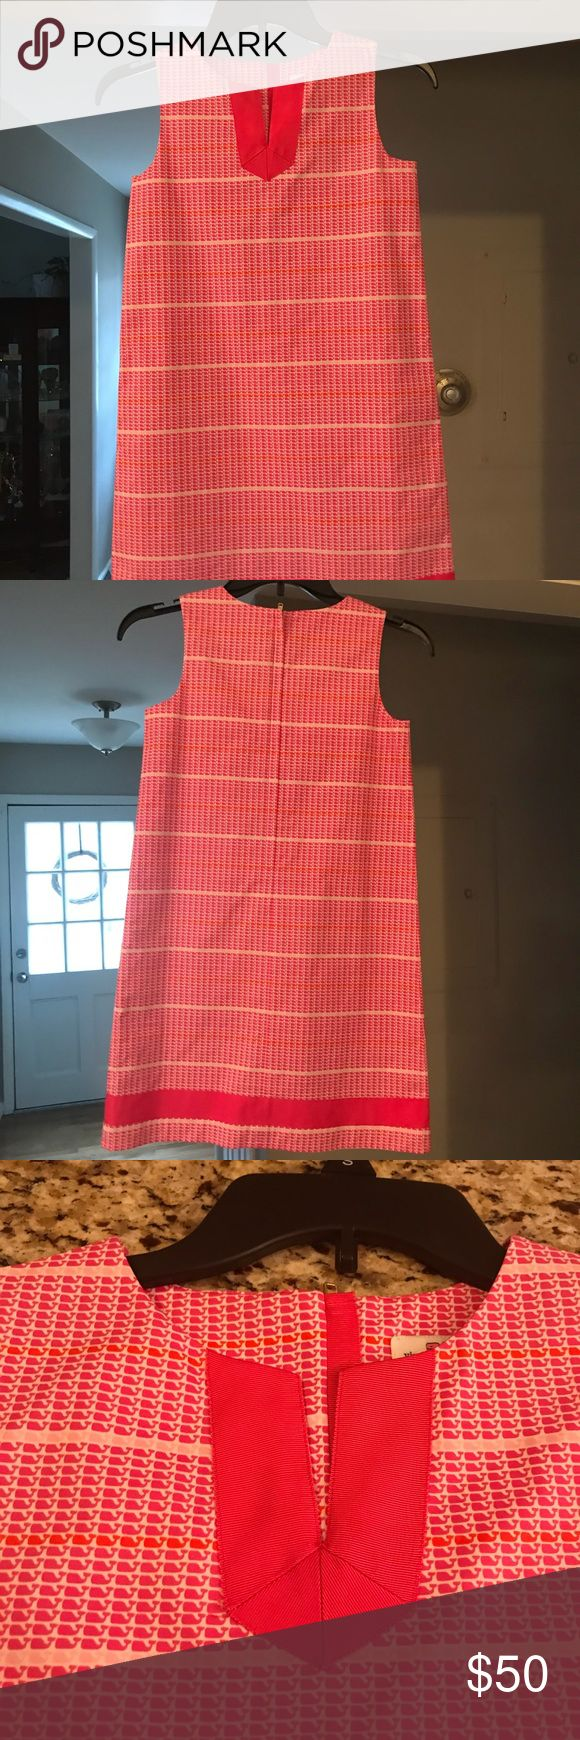 Vineyard Vines Girl's Dress Vineyard vines girls dress. Pink with whale logo design throughout. Worn only once, for about one hour. Vineyard Vines Dresses Casual